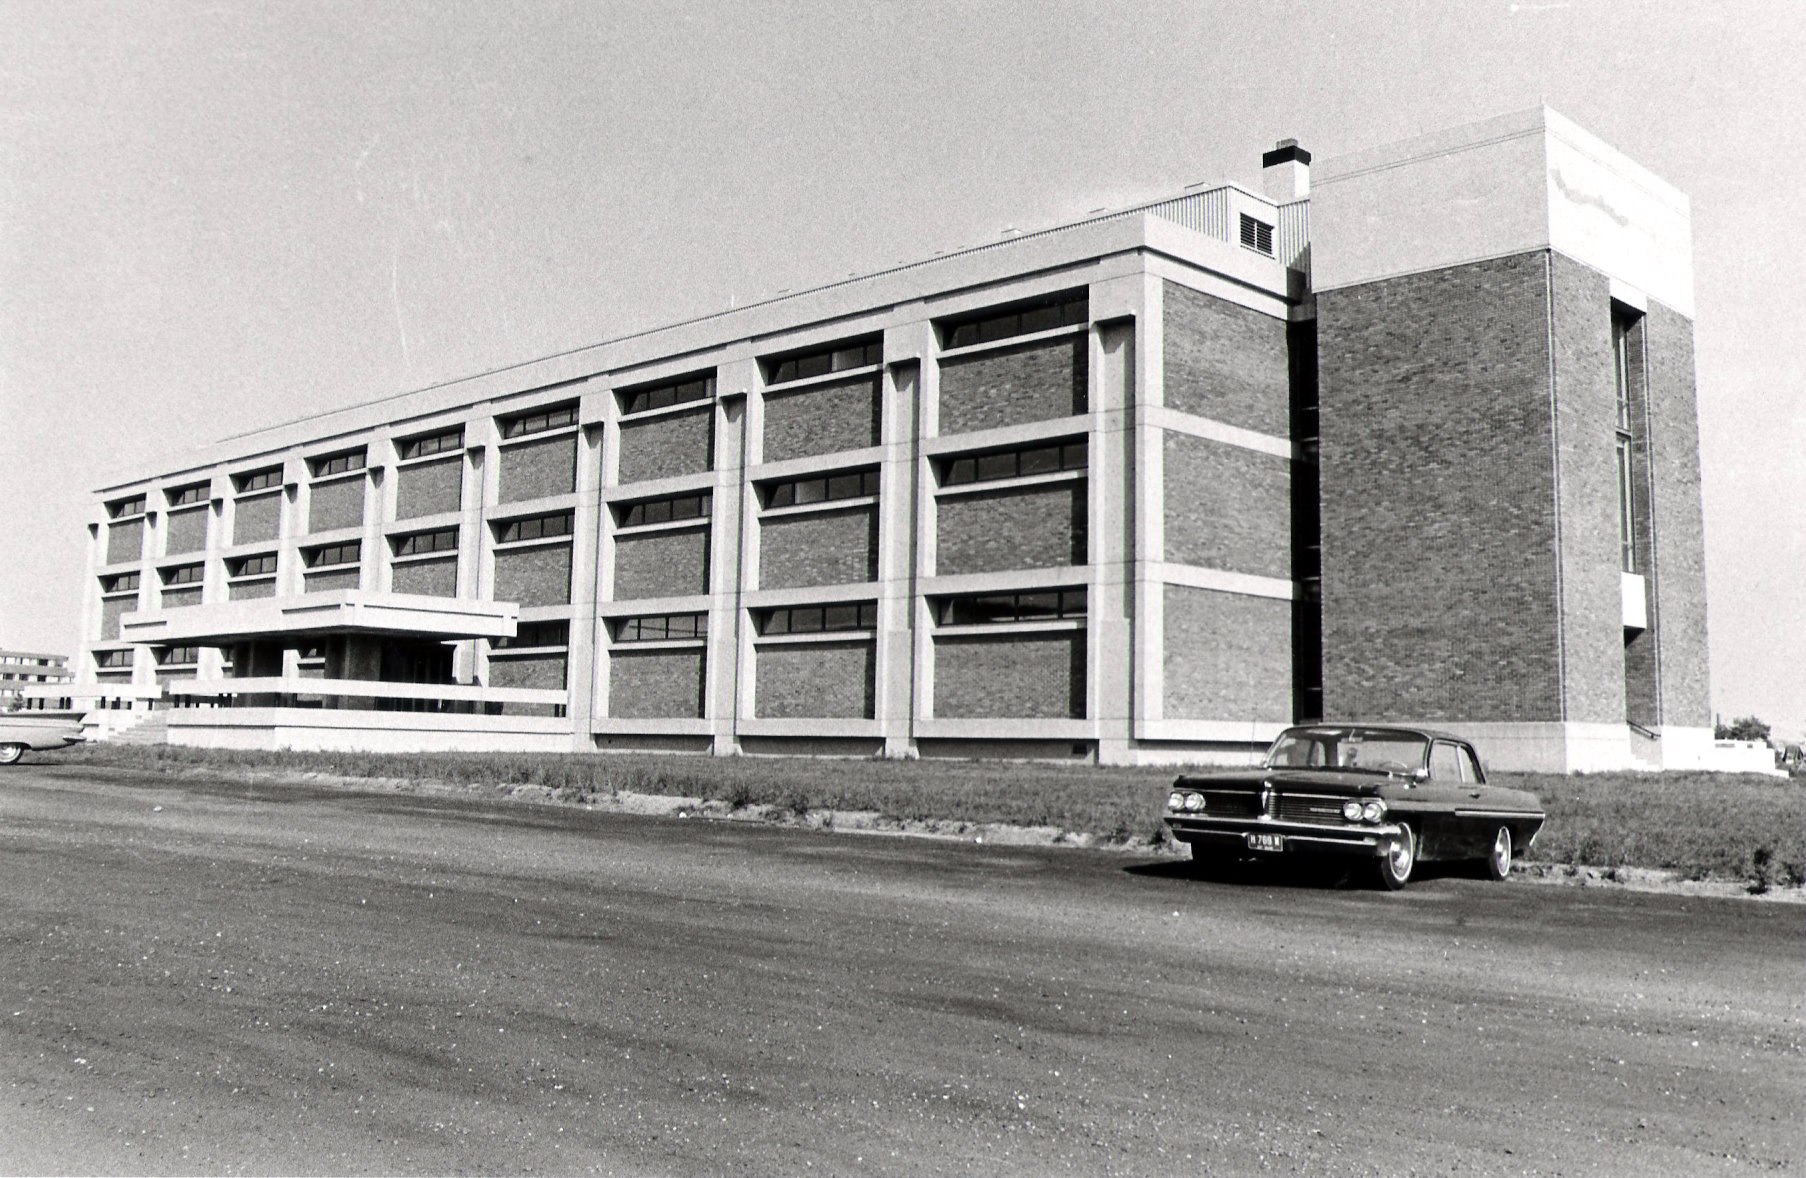 Williams Hall during its construction in the 1960s.